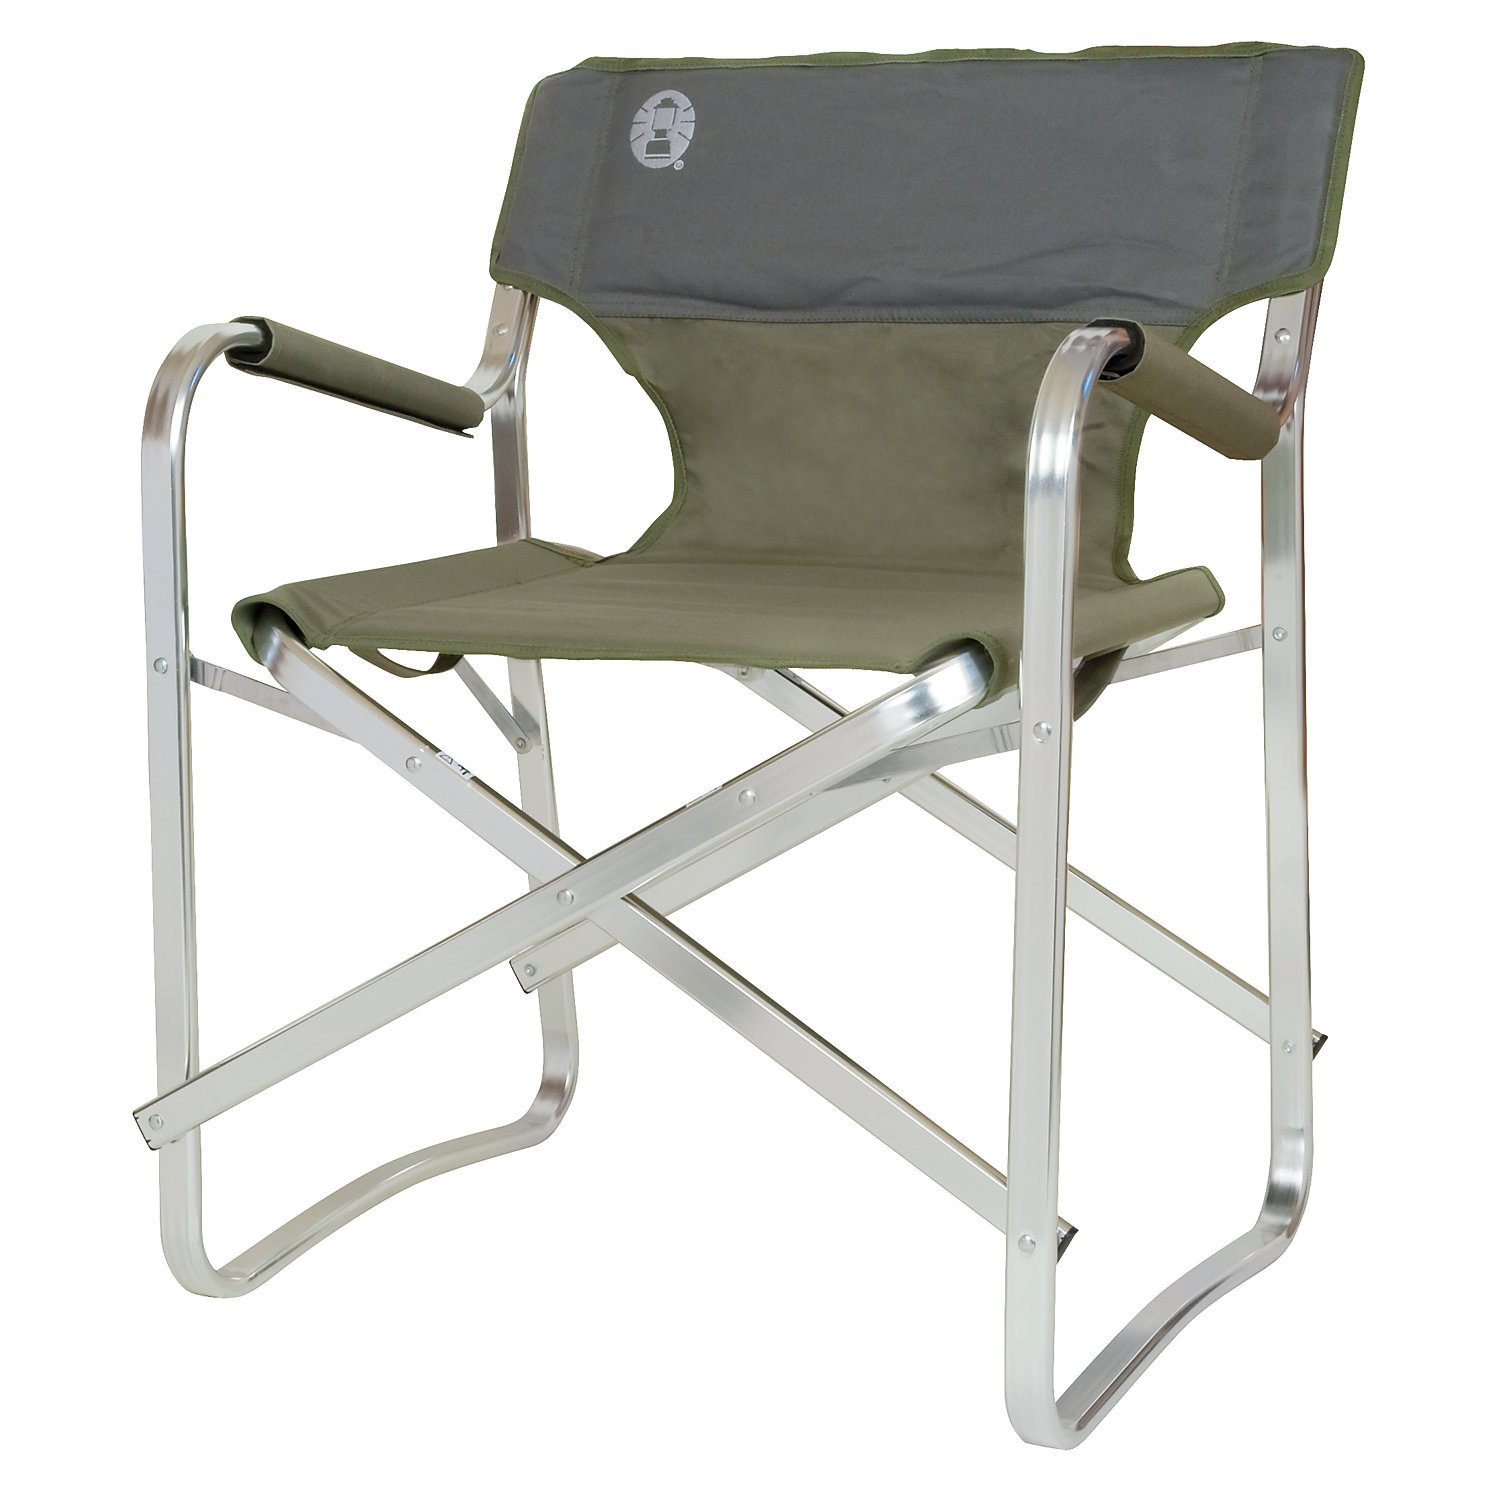 Amazon.com : Coleman Deck Chair green : Camping Stools : Sports ...